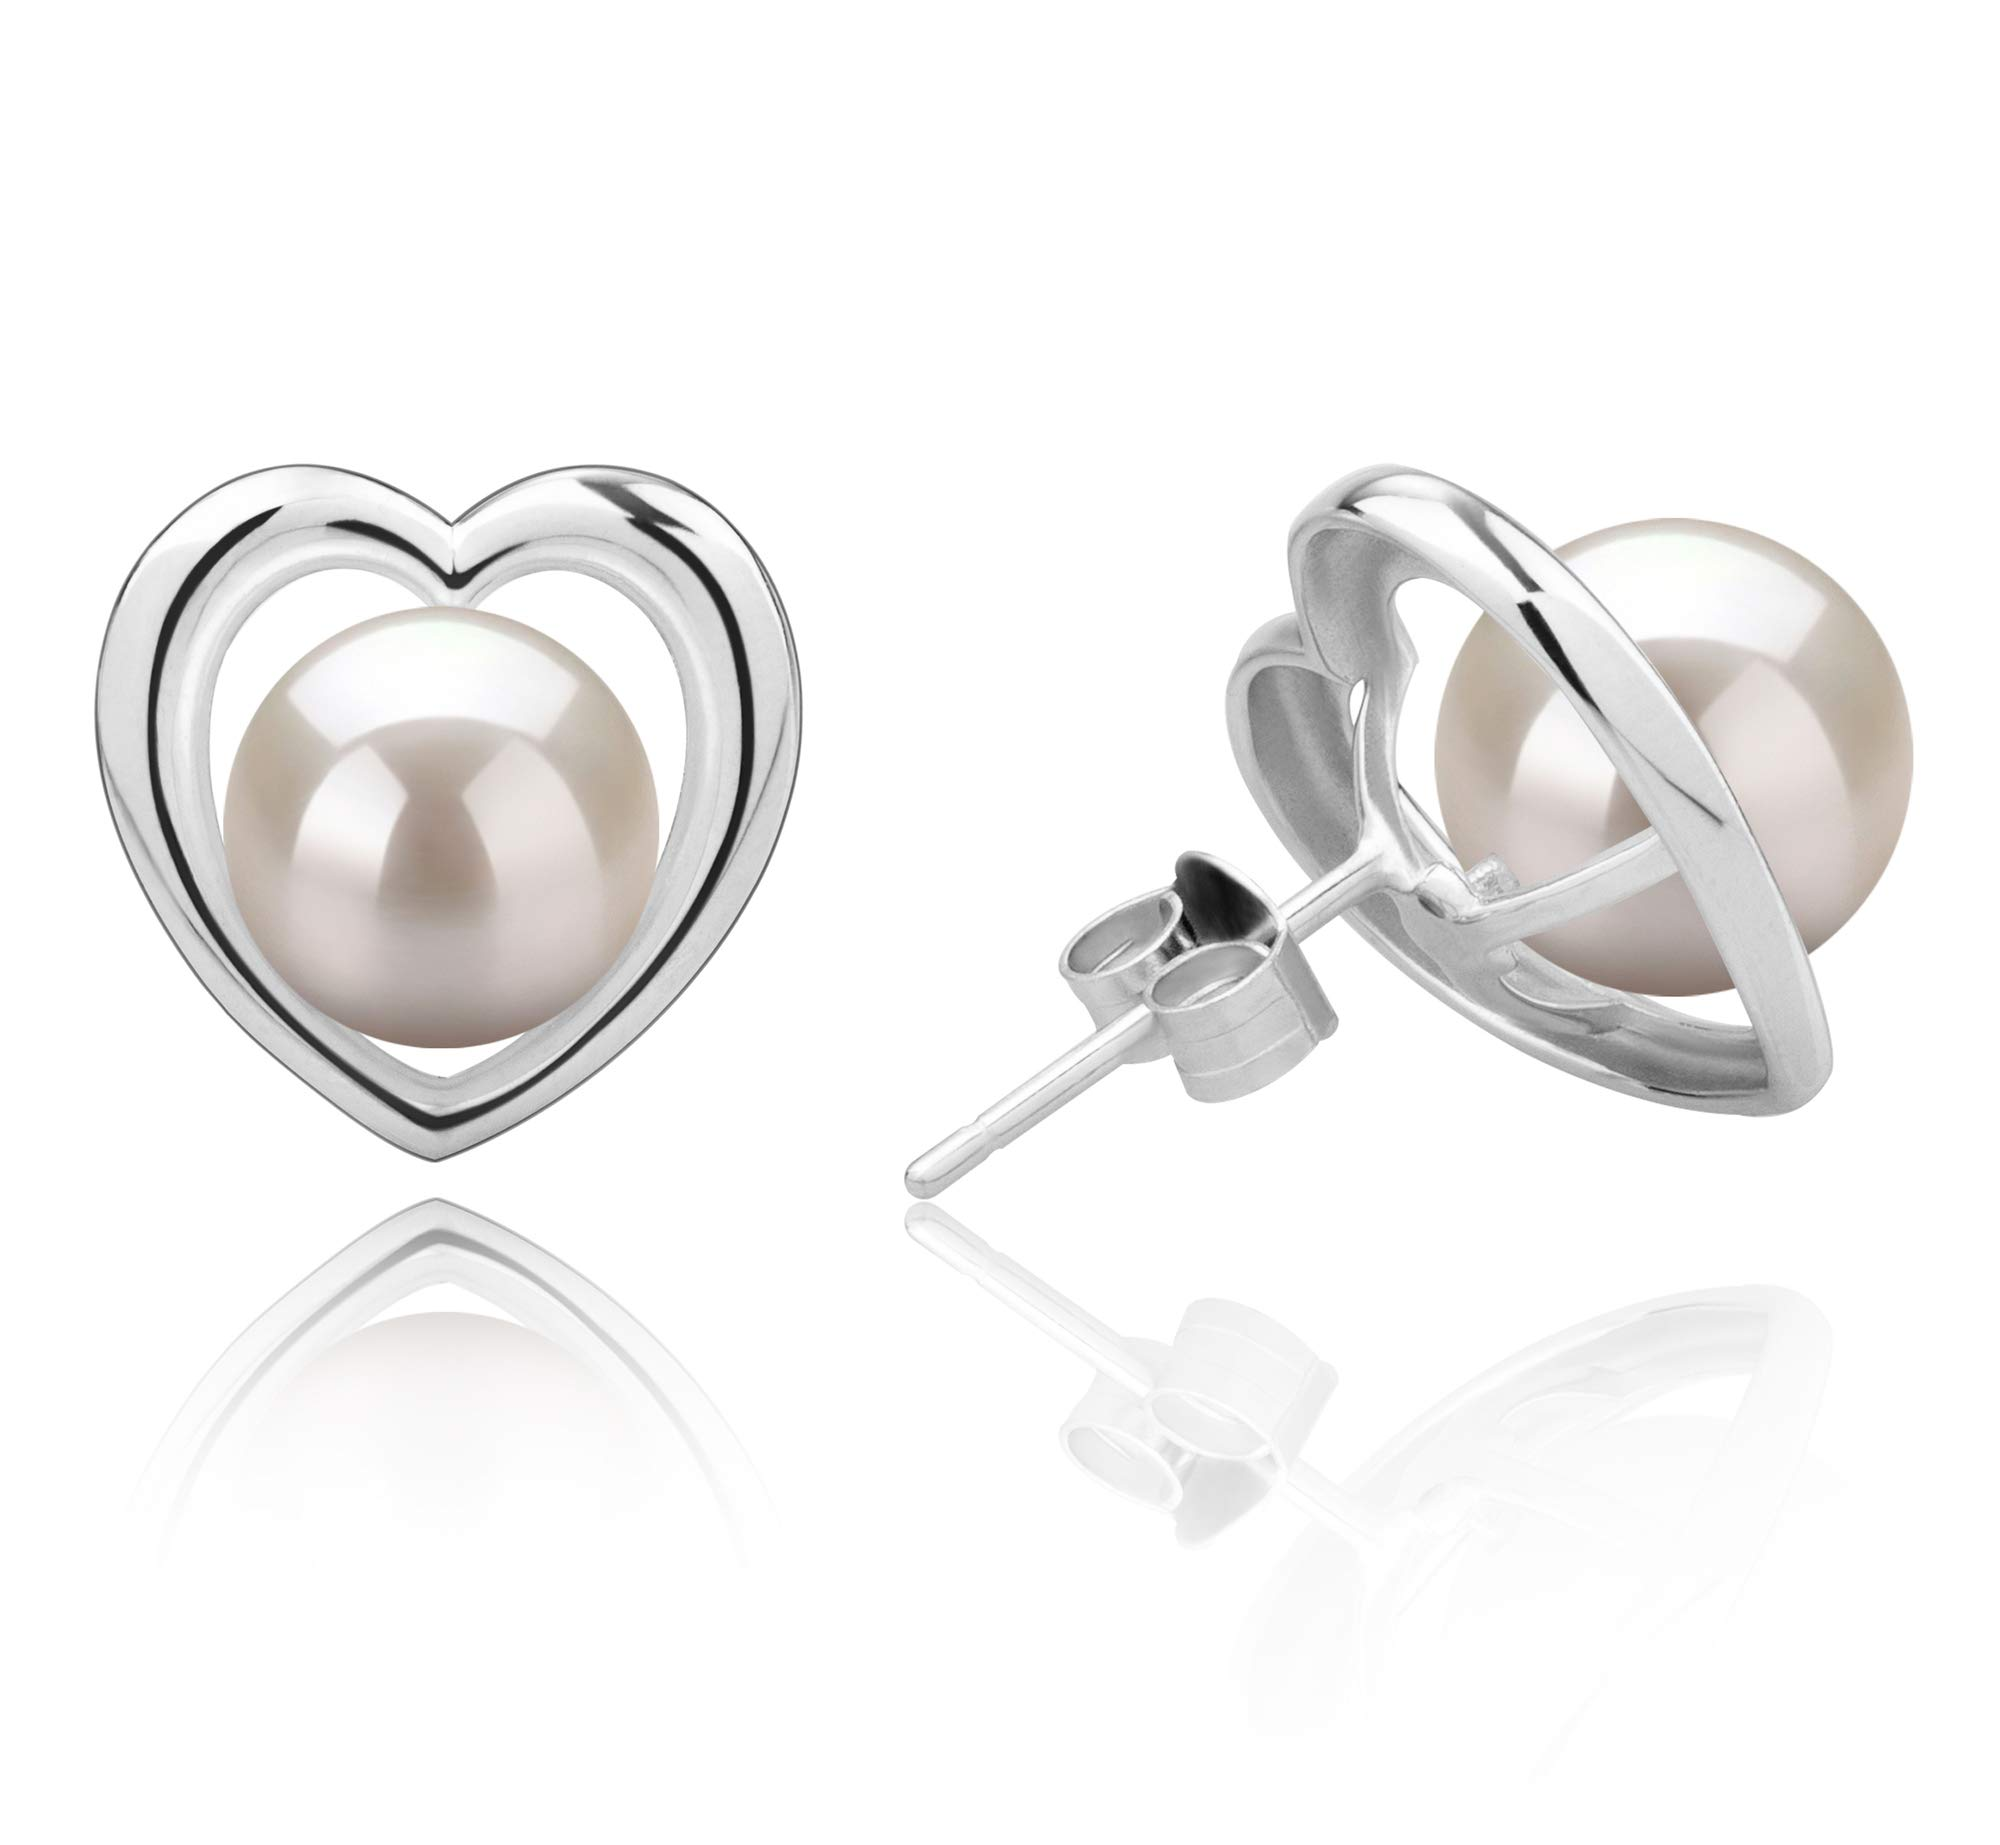 Kimberly-Heart White 8-9mm AAAA Quality Freshwater 925 Sterling Silver Cultured Pearl Earring Pair by PearlsOnly (Image #2)